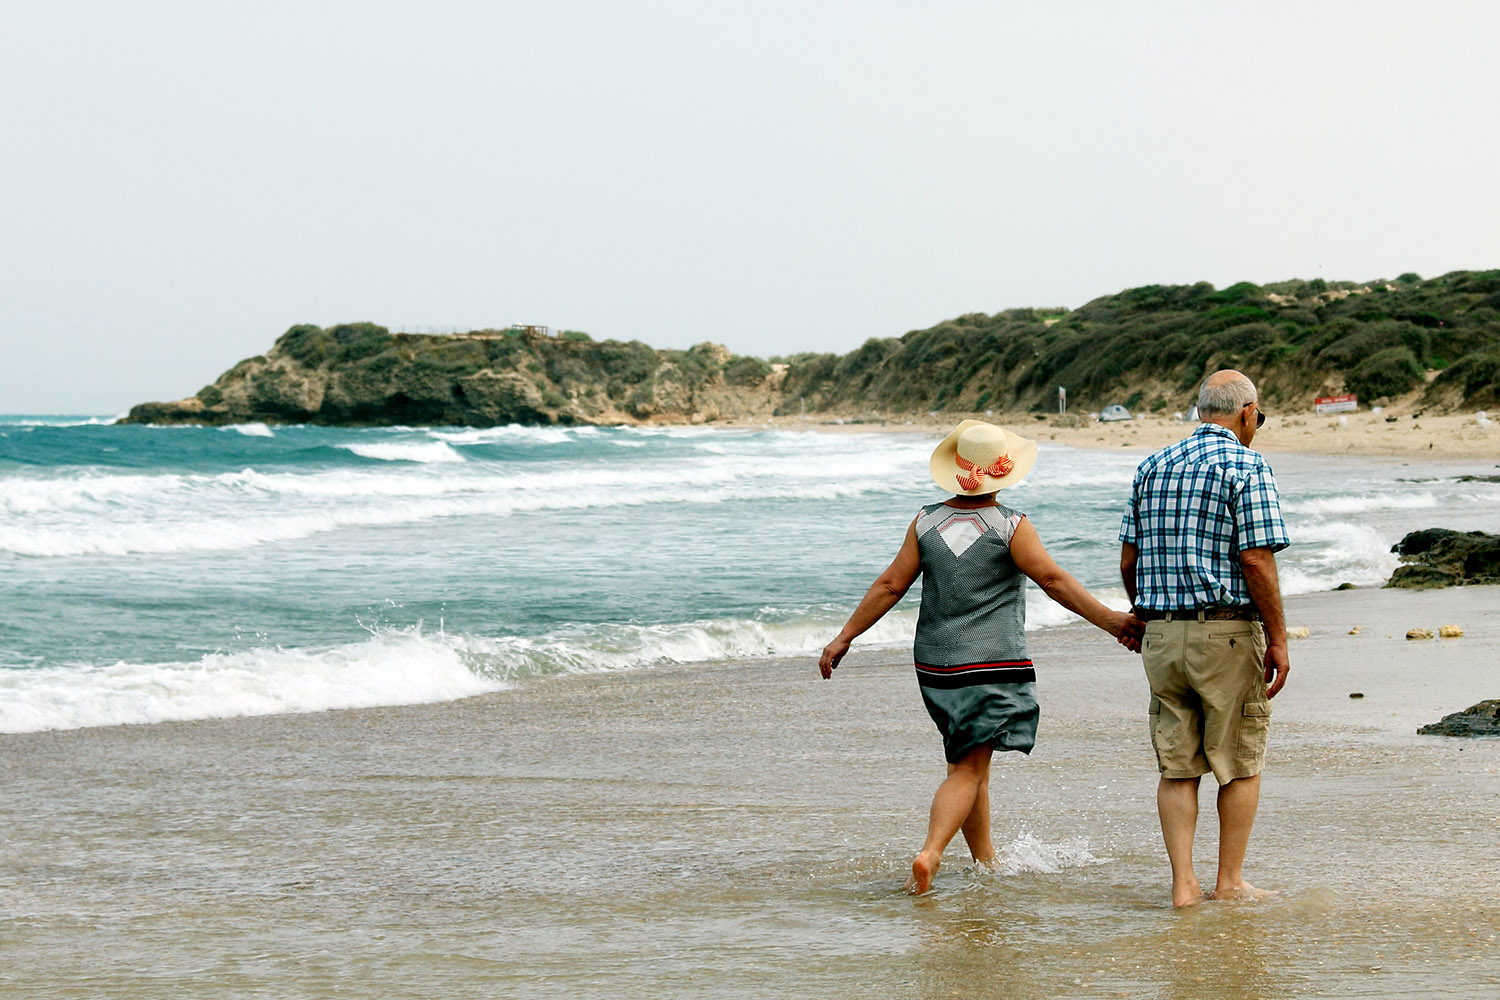 If you are going to retire in Canada and you have a Defined Contribution Pension in the UK, life might be better if you transfer the funds to Canada.